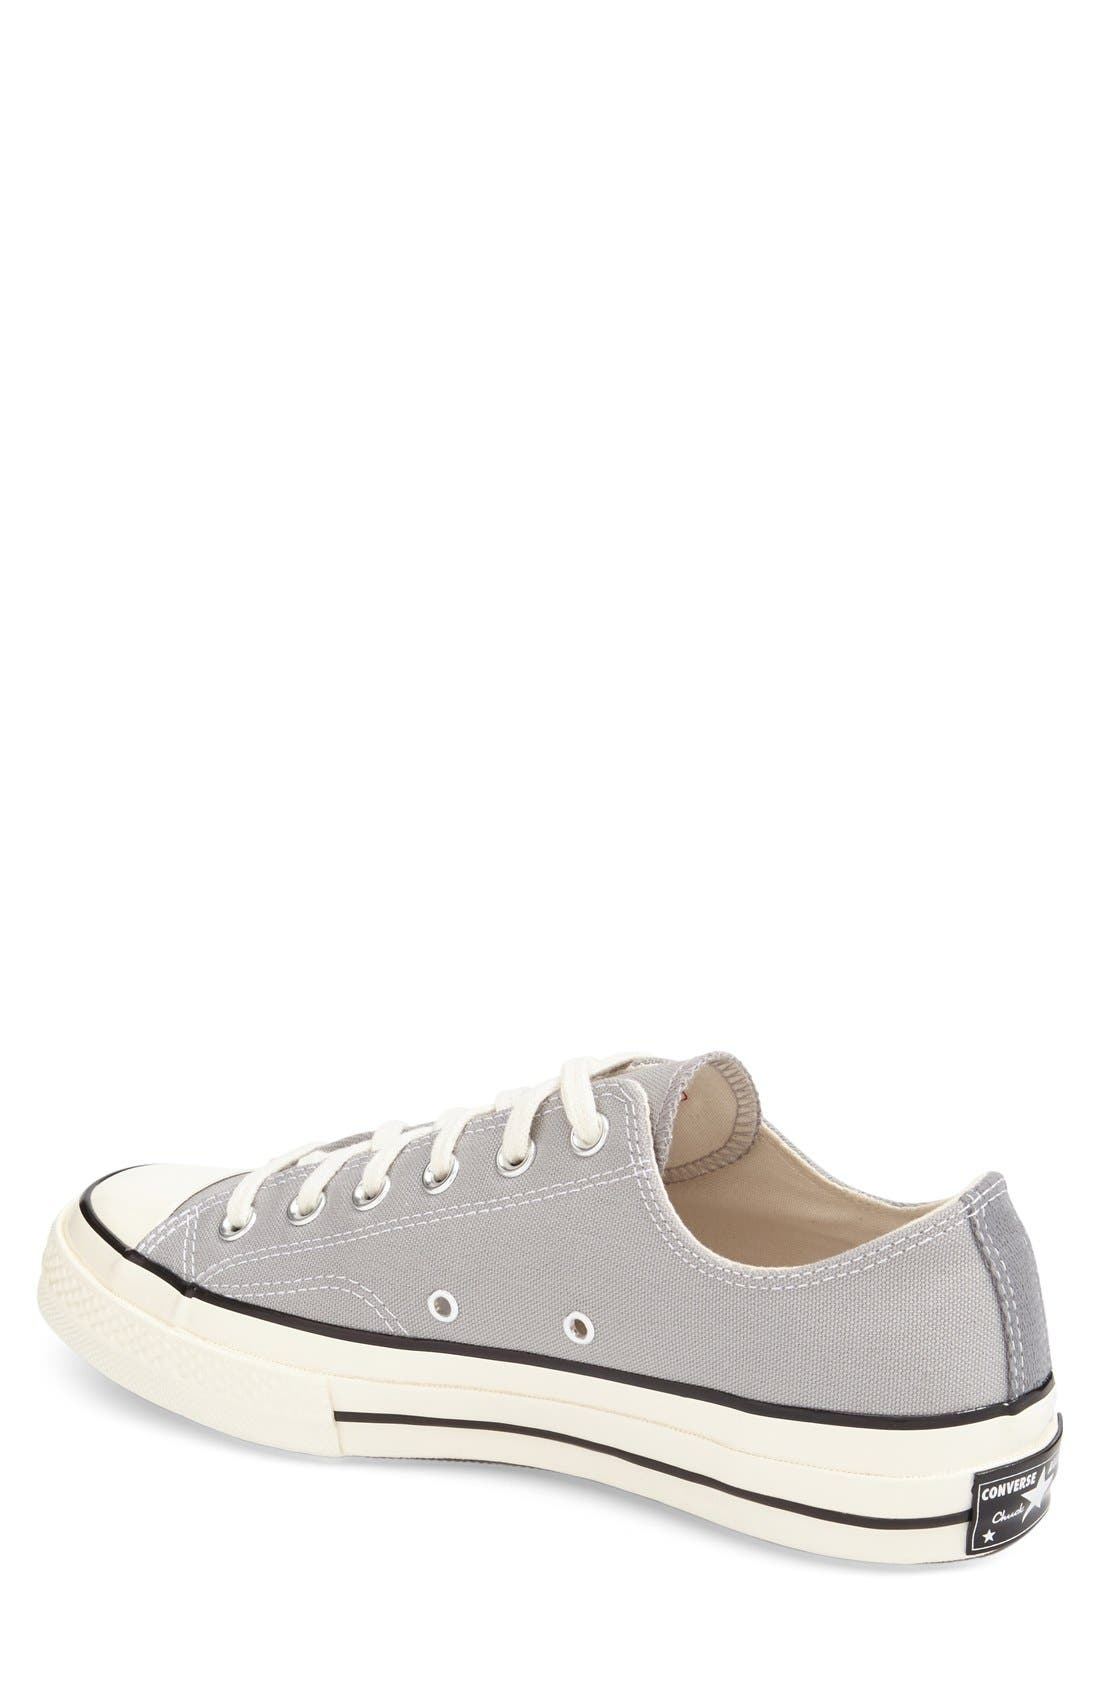 Alternate Image 2  - Converse Chuck Taylor® All Star® '70 Low Sneaker (Men)